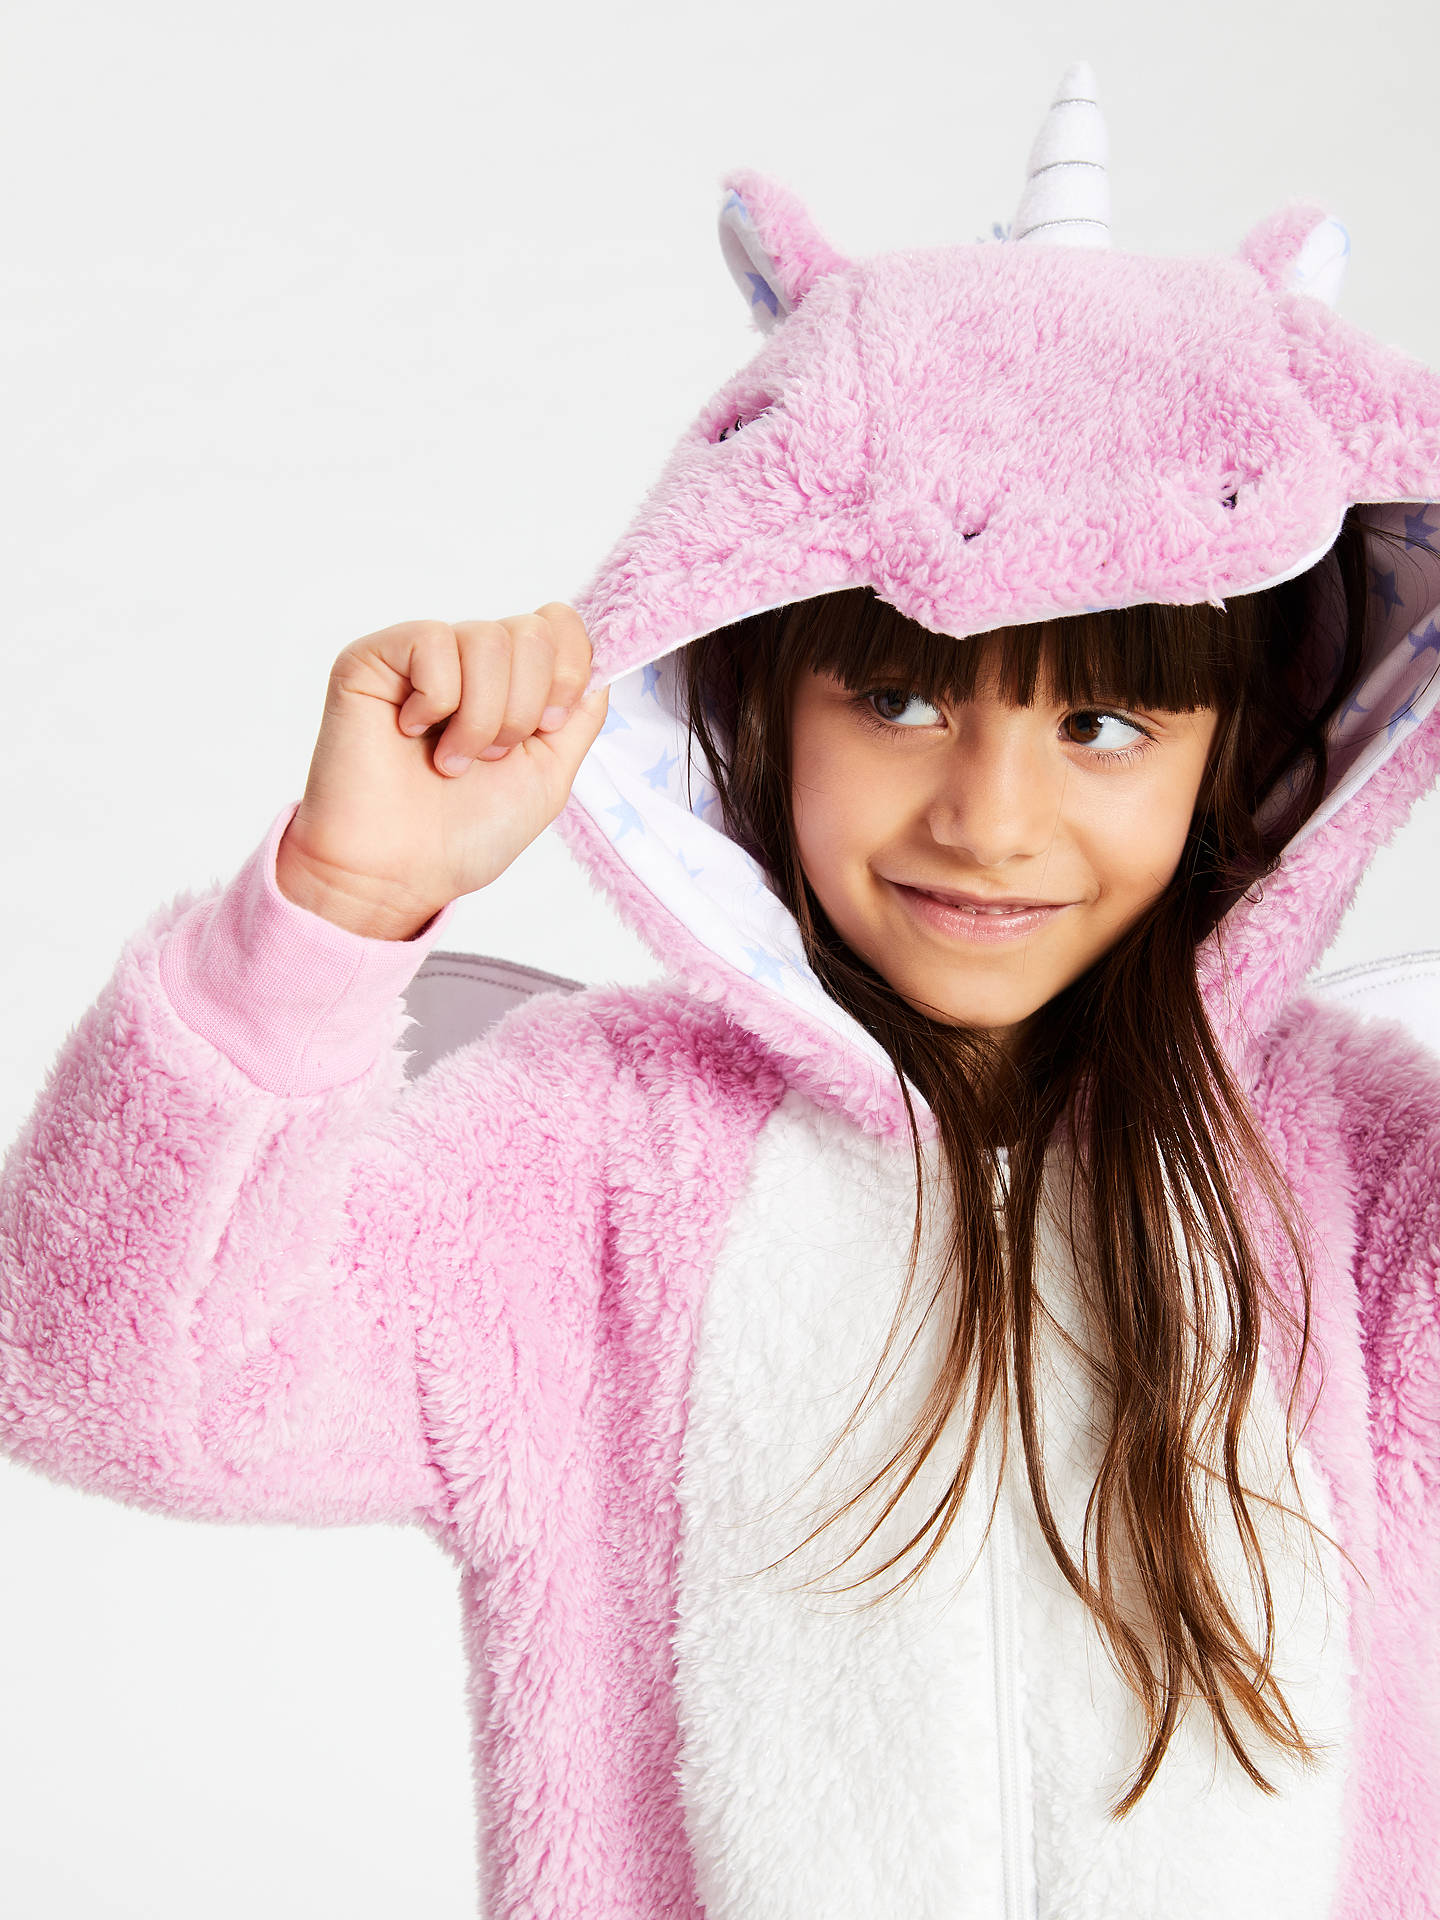 Buy John Lewis & Partners Girls' Unicorn Fleece Onesie, Pink, 3 years Online at johnlewis.com